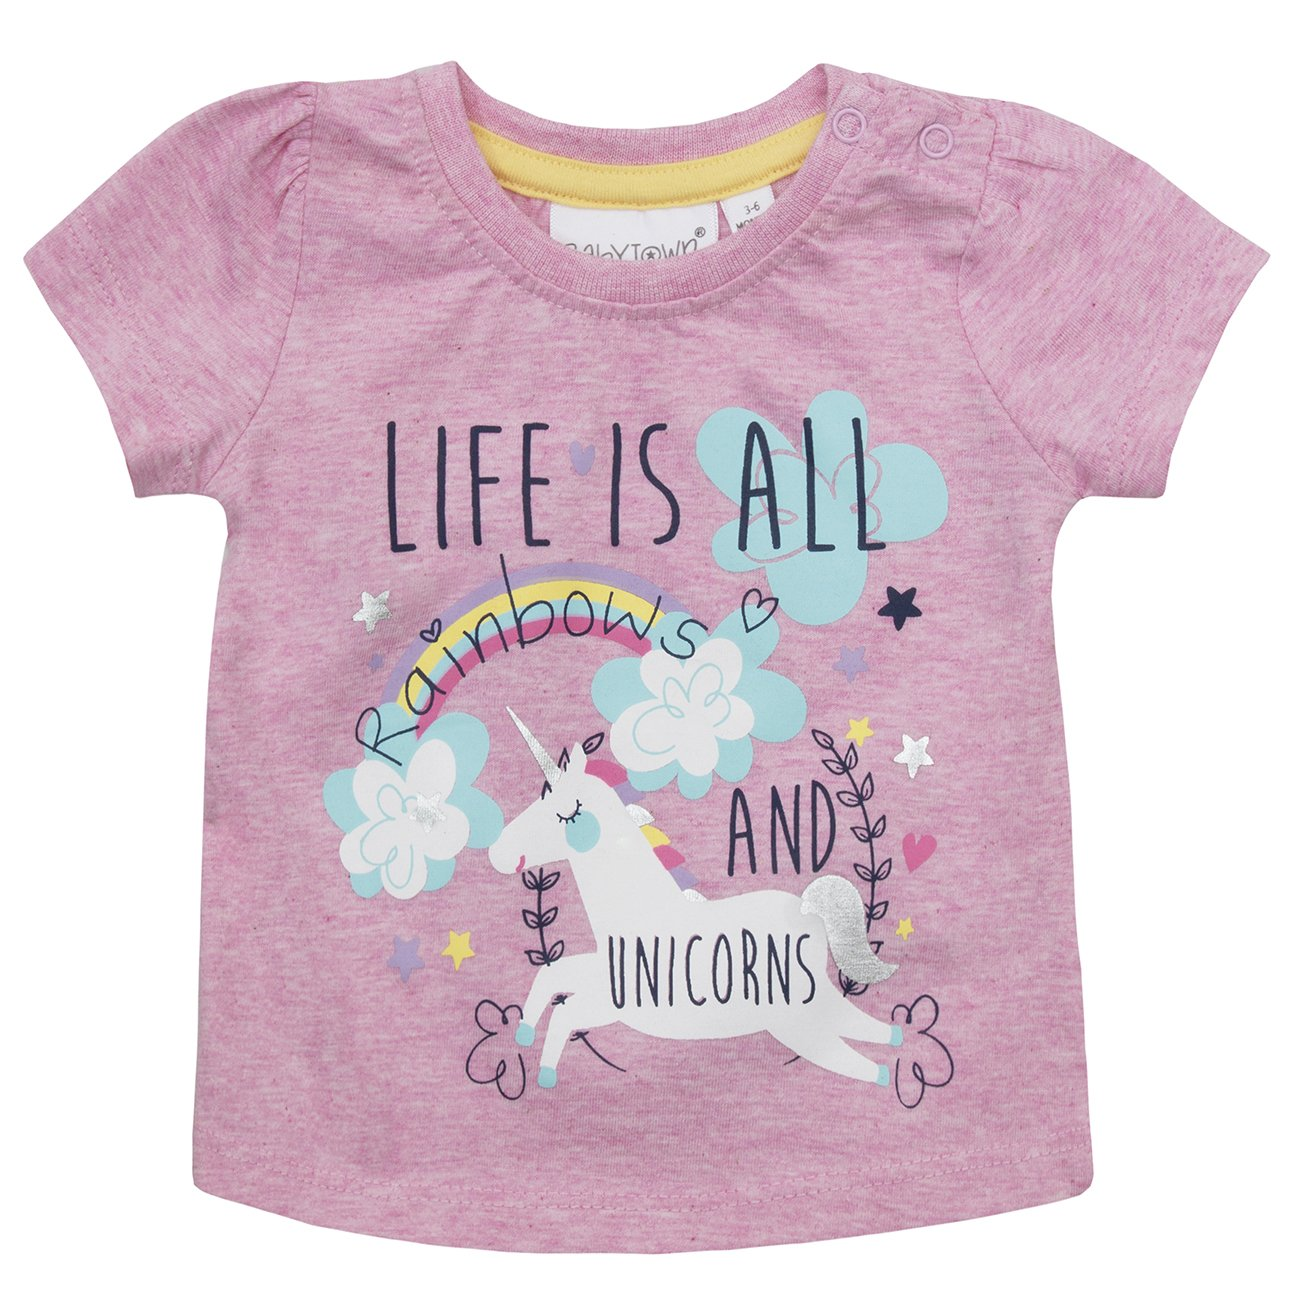 BABY TOWN Baby Girls Printed T-Shirts (Multibuy Options) Cotton Rich Novelty Top Babytown